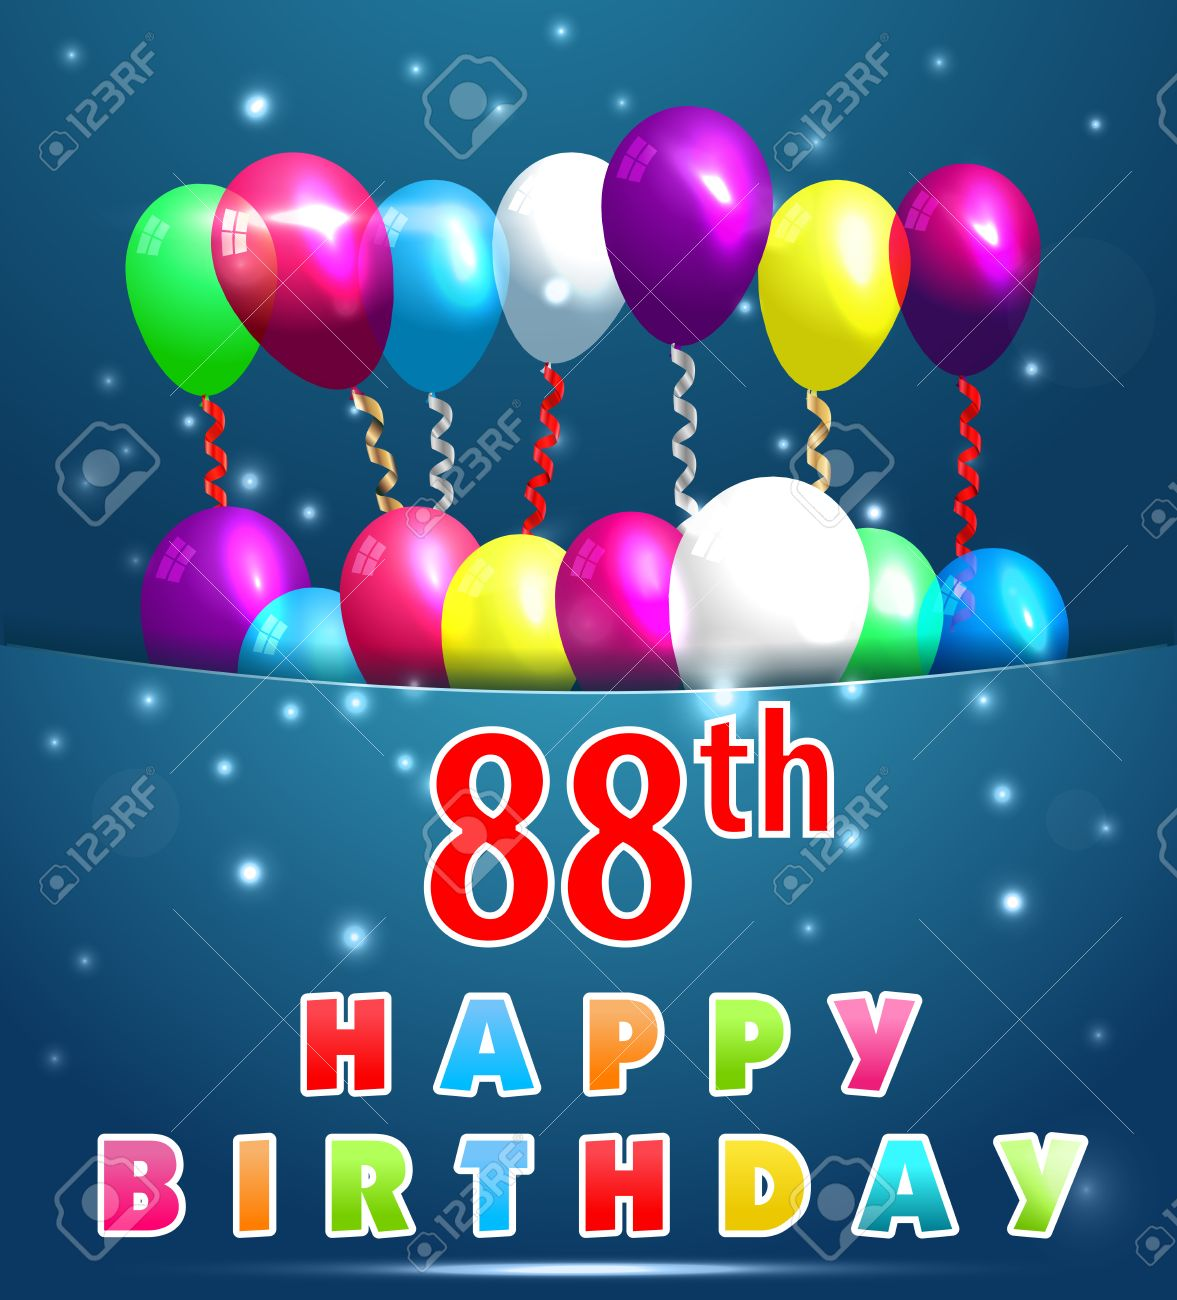 88 Year Happy Birthday Card With Balloons And Ribbons88th Stock Vector